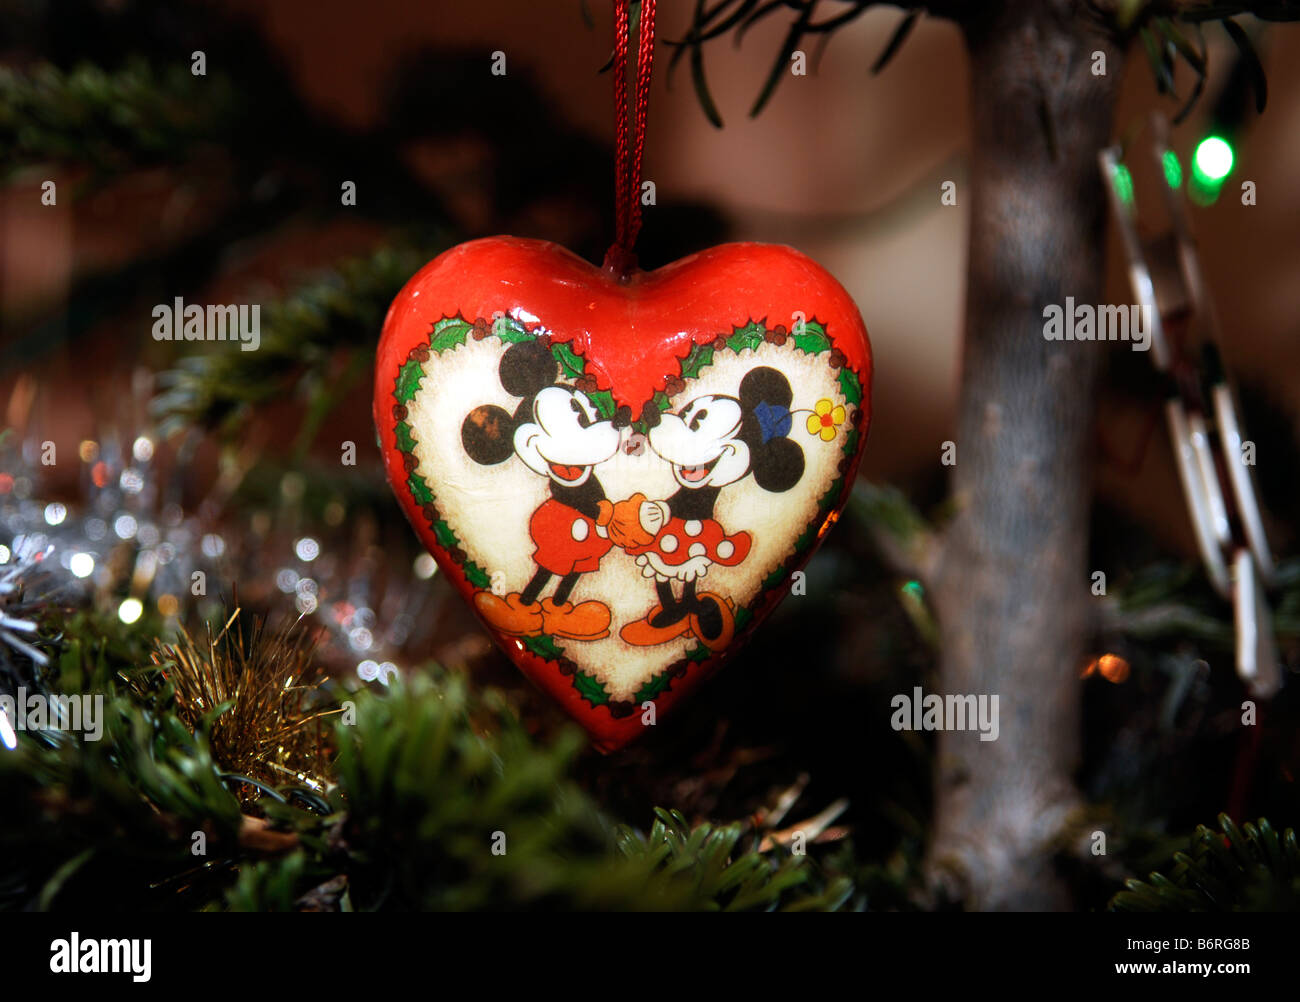 Mickey And Minnie Mouse Christmas Tree Decoration Stock Photo